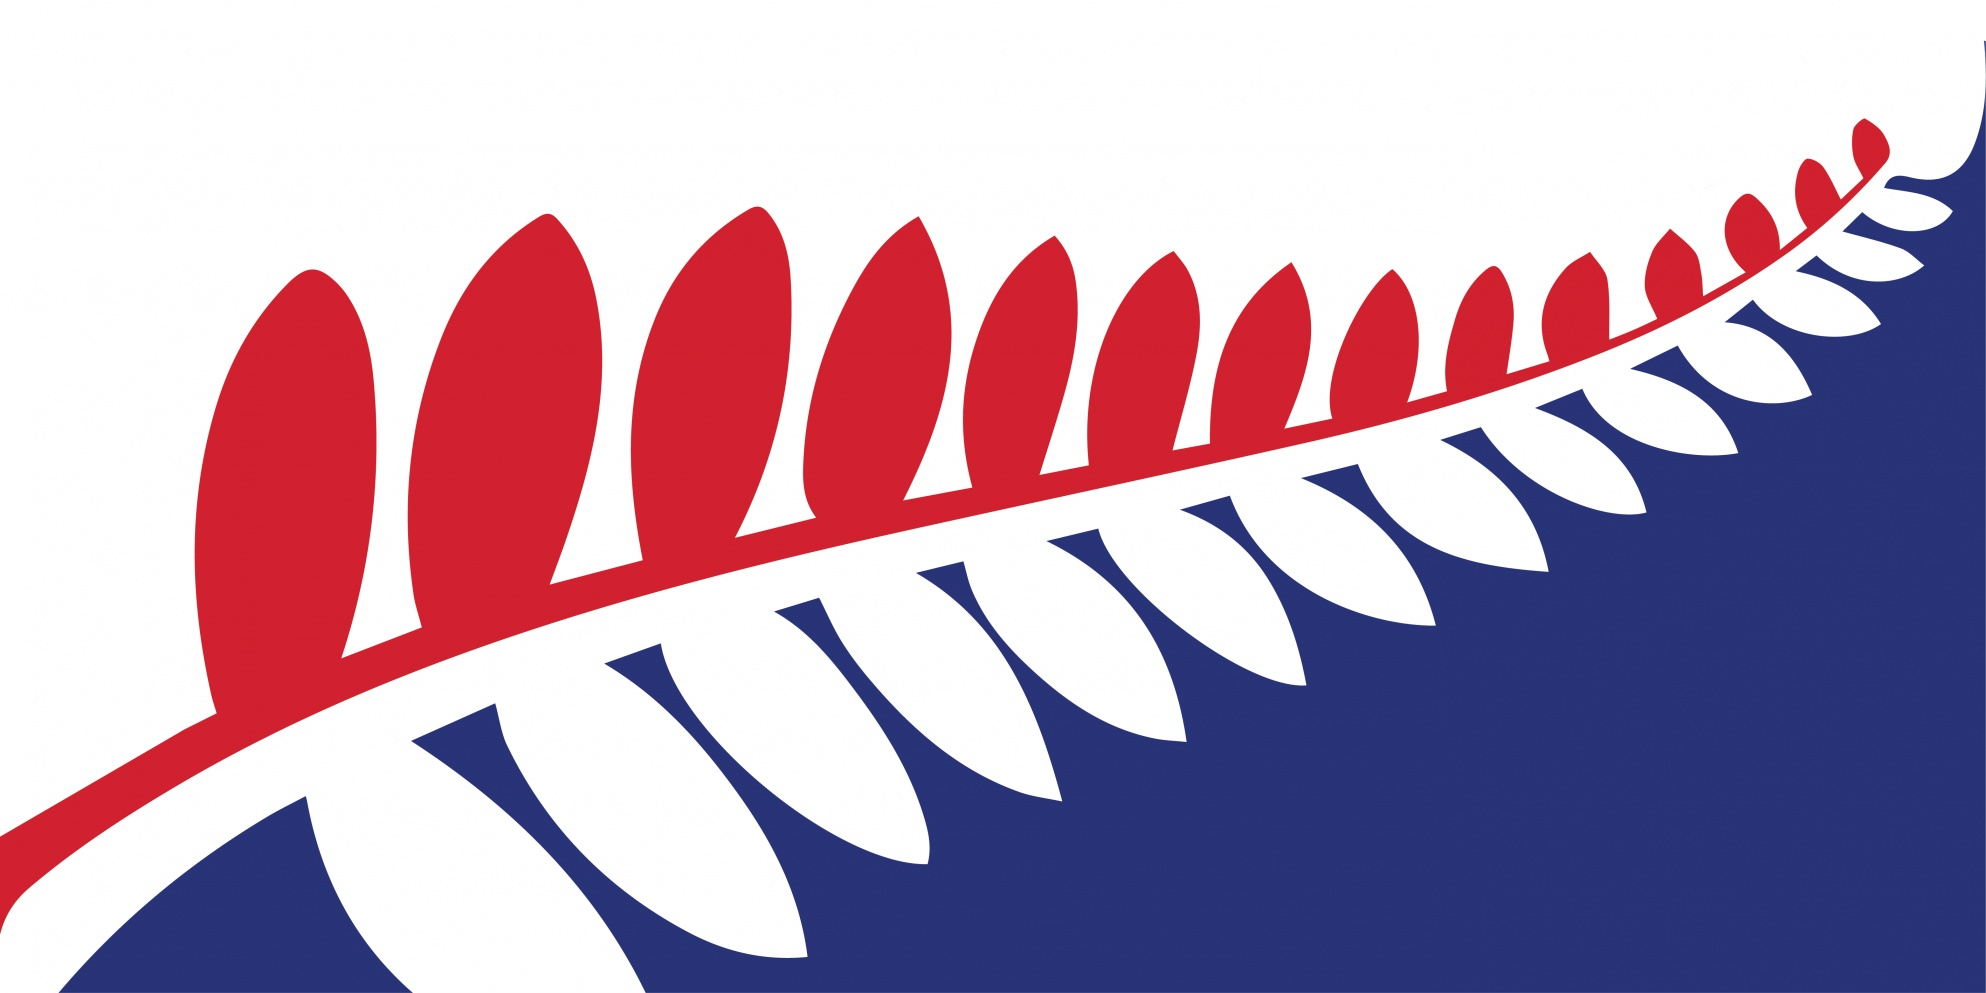 filenz flag design unity fern red blue by paul jackways - Flag Design Ideas